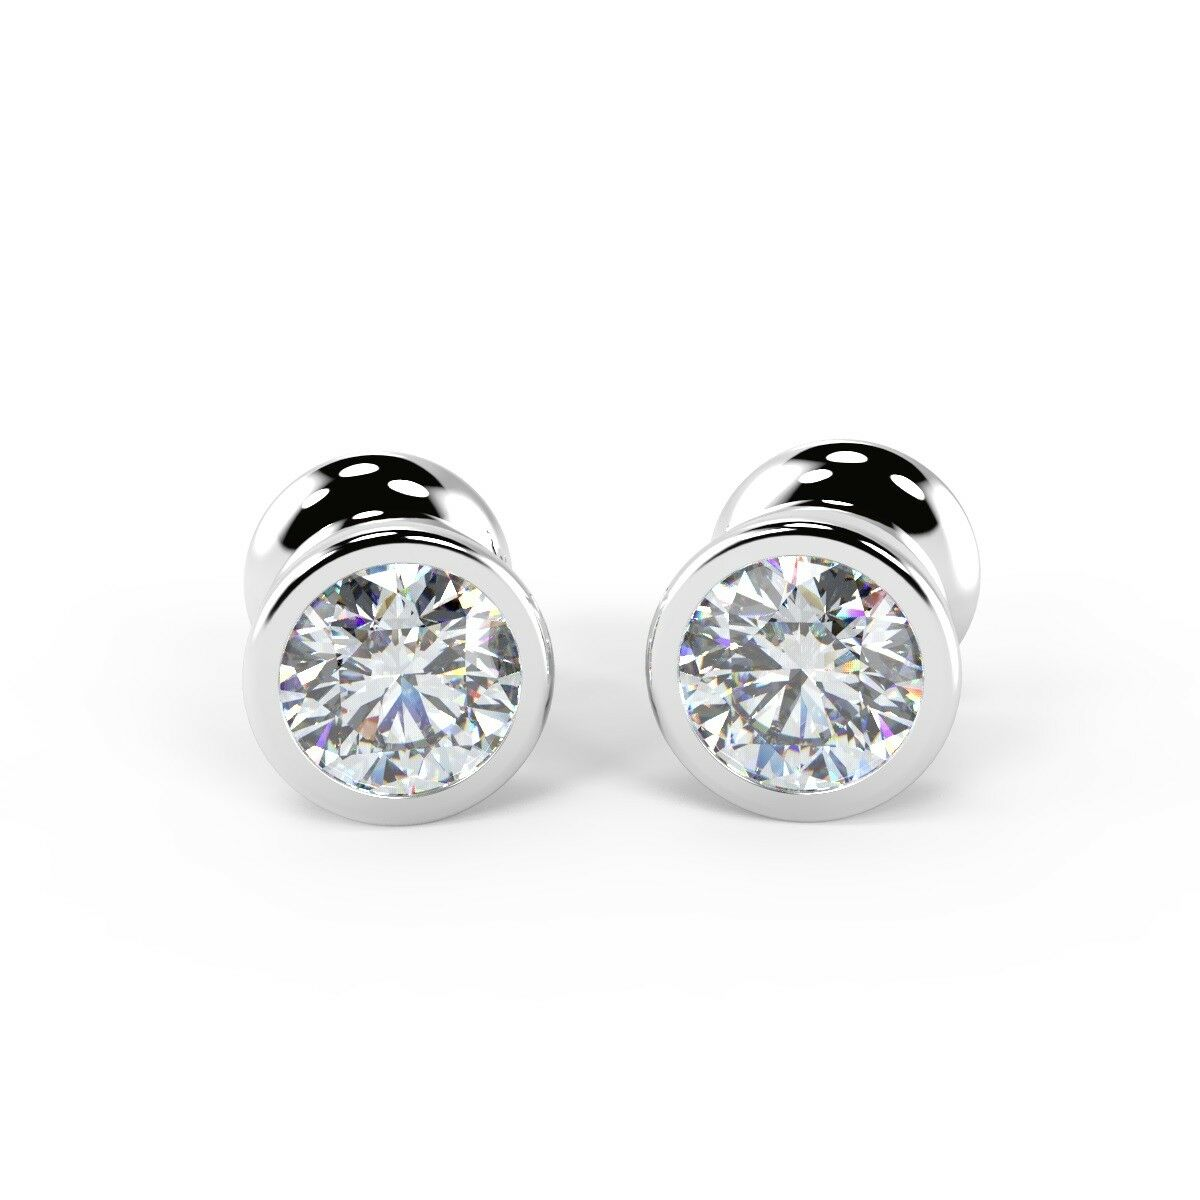 F VS 0.56 Ct Round Diamond Bezel Set Stud Earring, 18K White gold UK Hallmarked